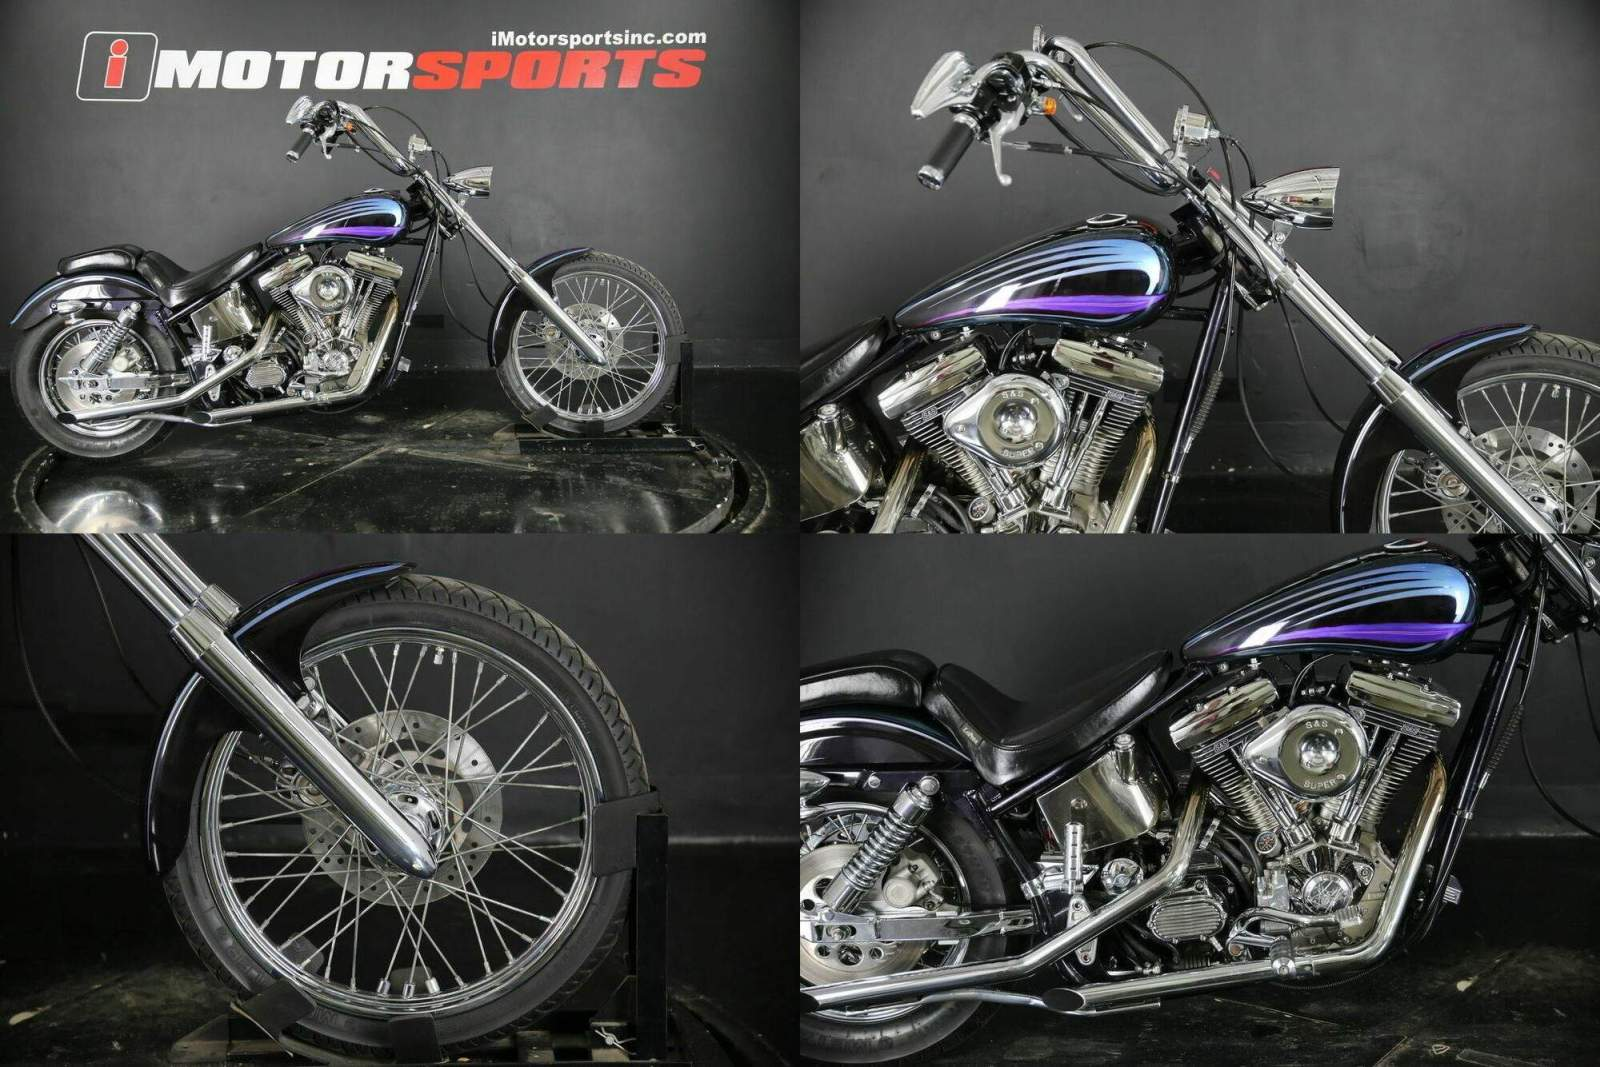 1994 Custom Built Motorcycles DYNA LOWRIDER Black used for sale craigslist